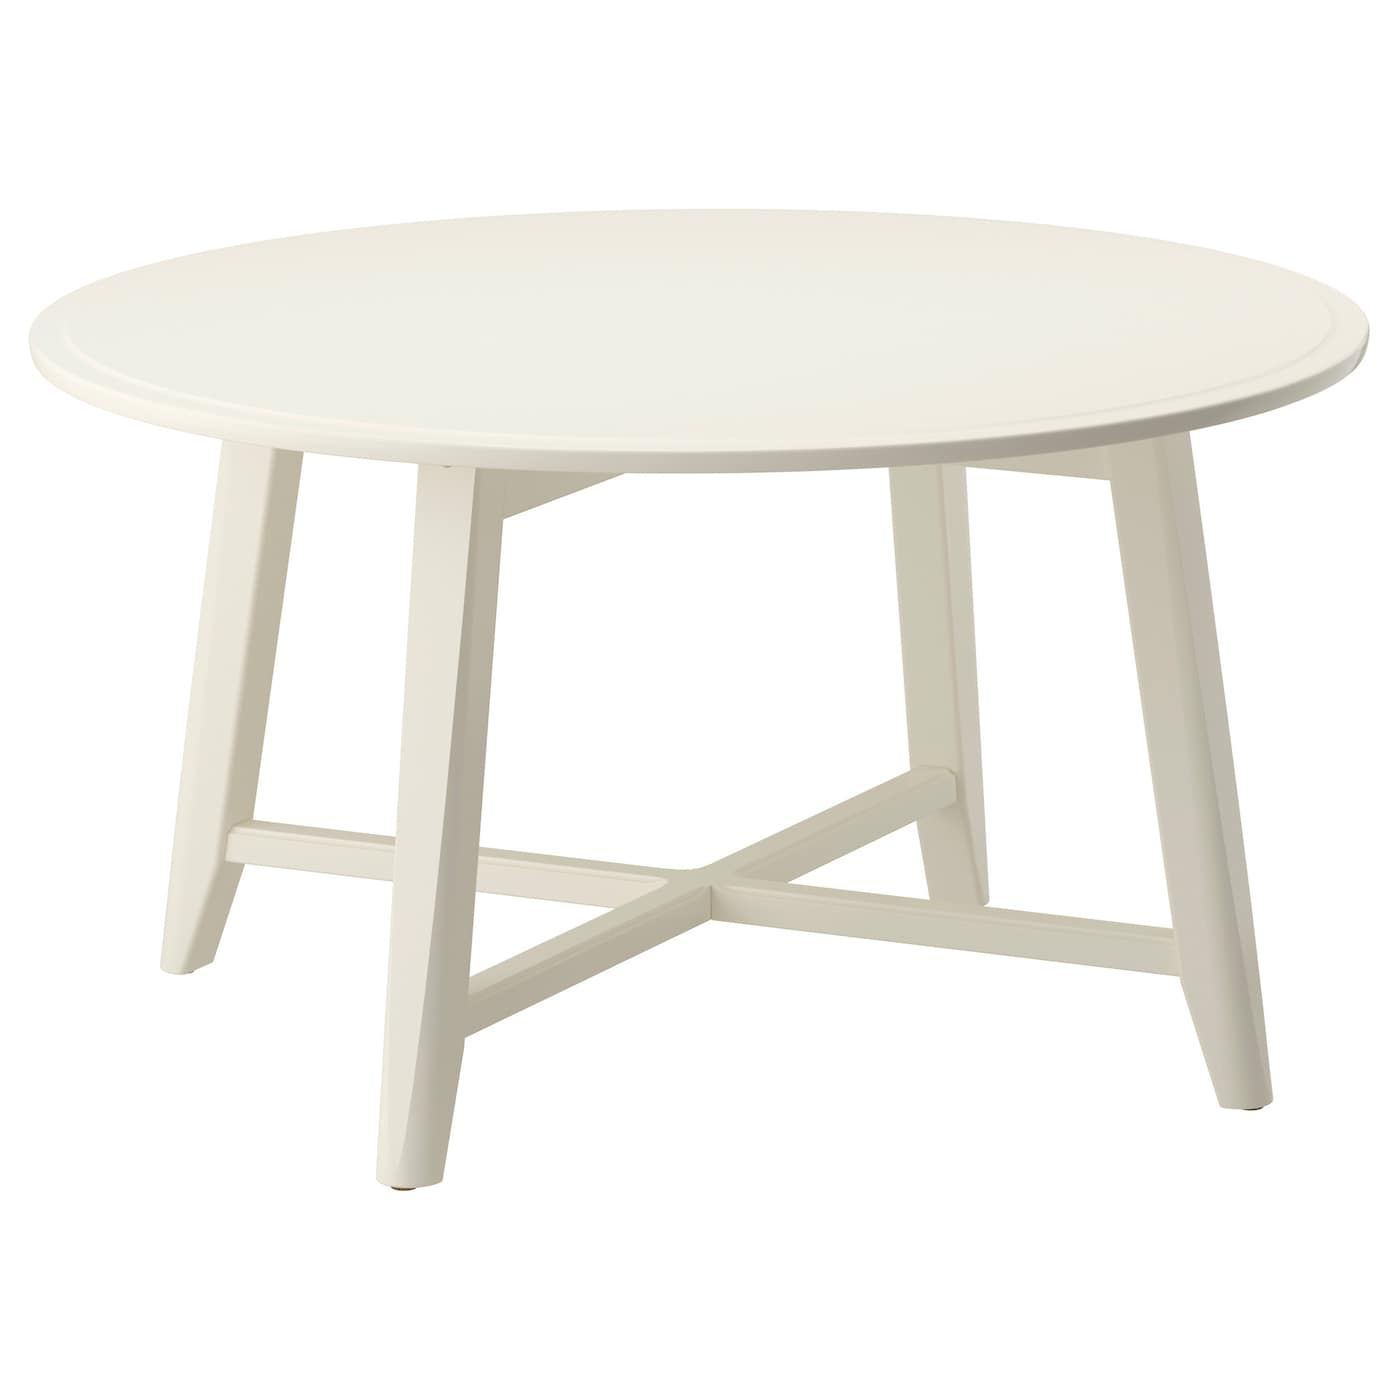 Kragsta table basse blanc 90 cm ikea - Personnaliser table basse ikea ...